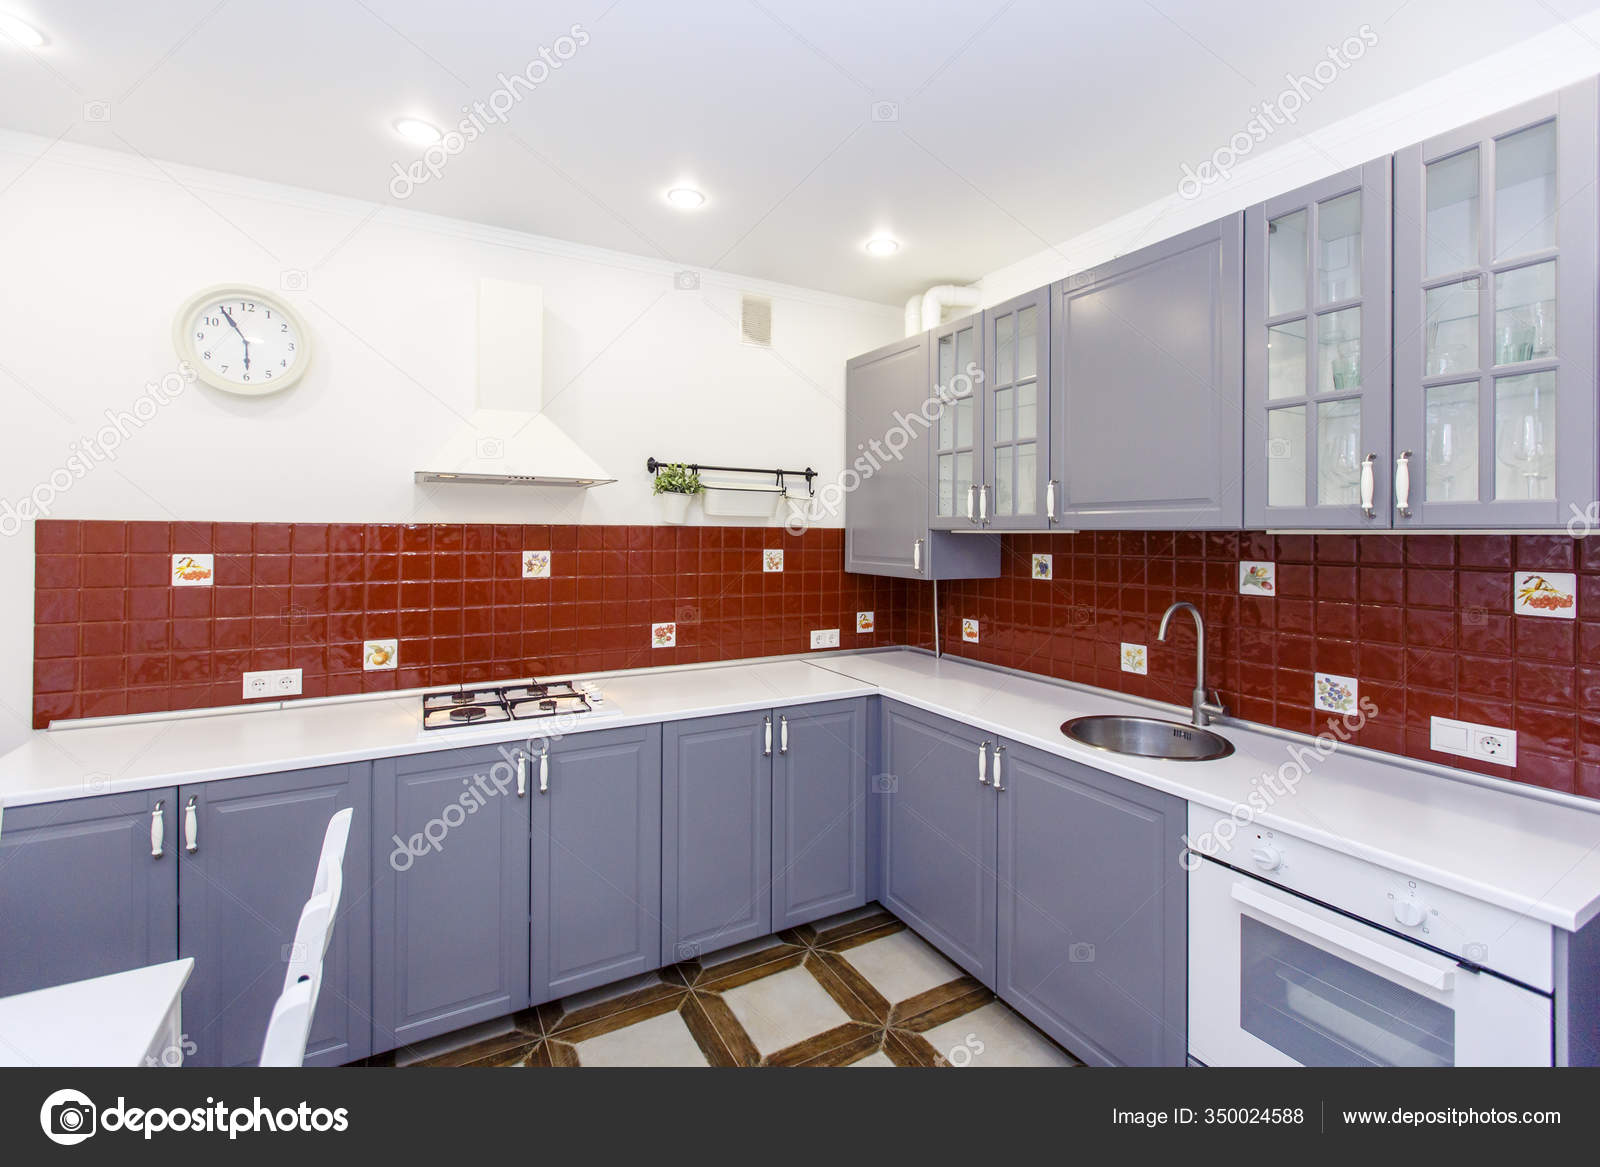 Modern Stylish Large Kitchen In The Cottage Kitchen In Red And Steel Colors The Doors Are Steel Colored And The Tiles On The Wall Are Red The Floor Tiles Are Beige White Table